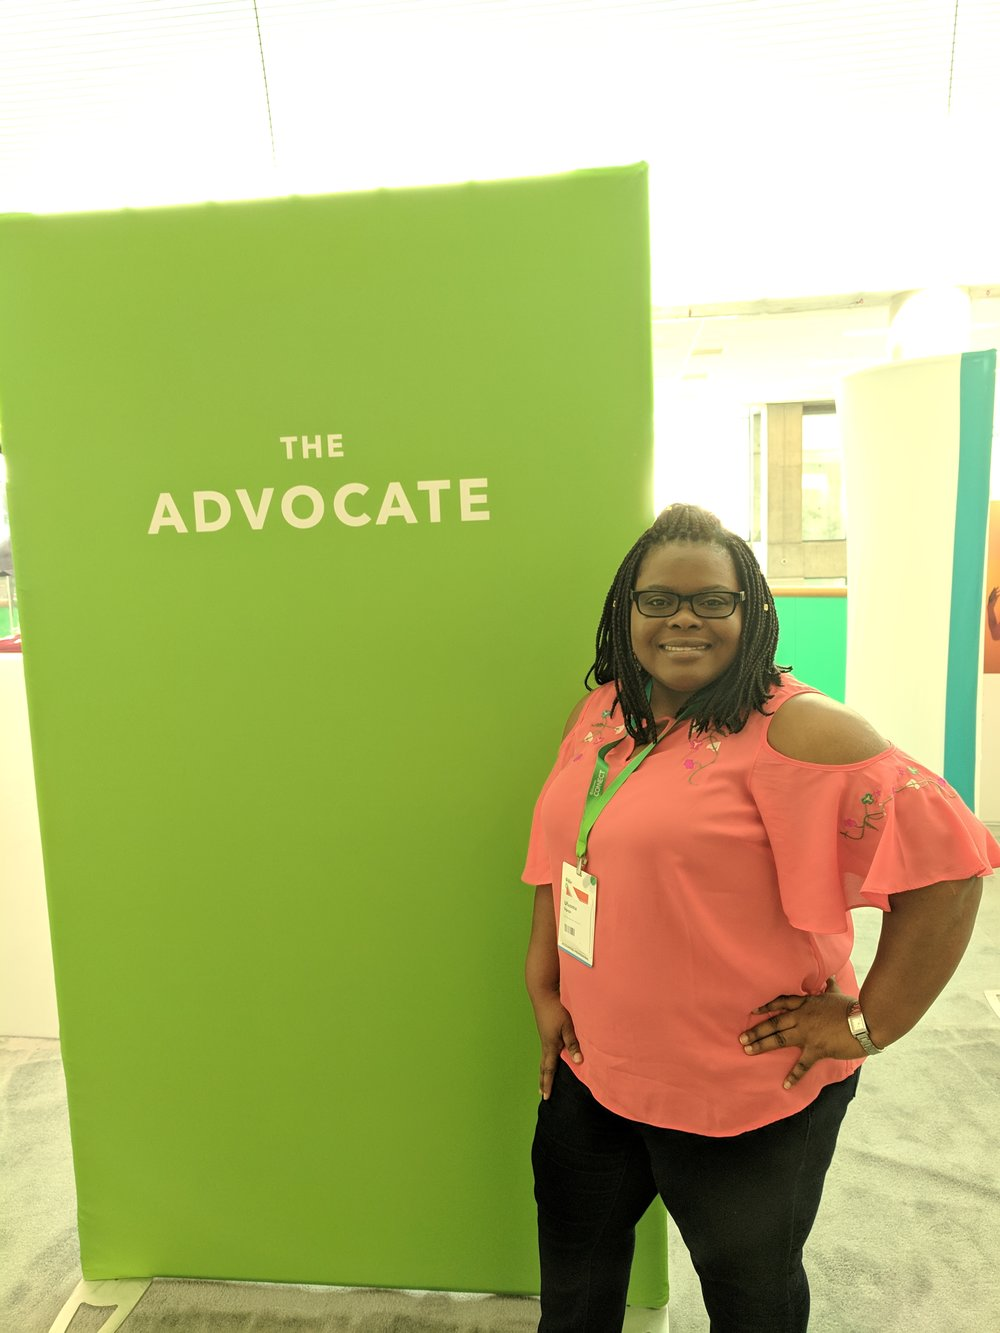 Ufuoma Ogaga, The Advocate - 2018 QBConnect